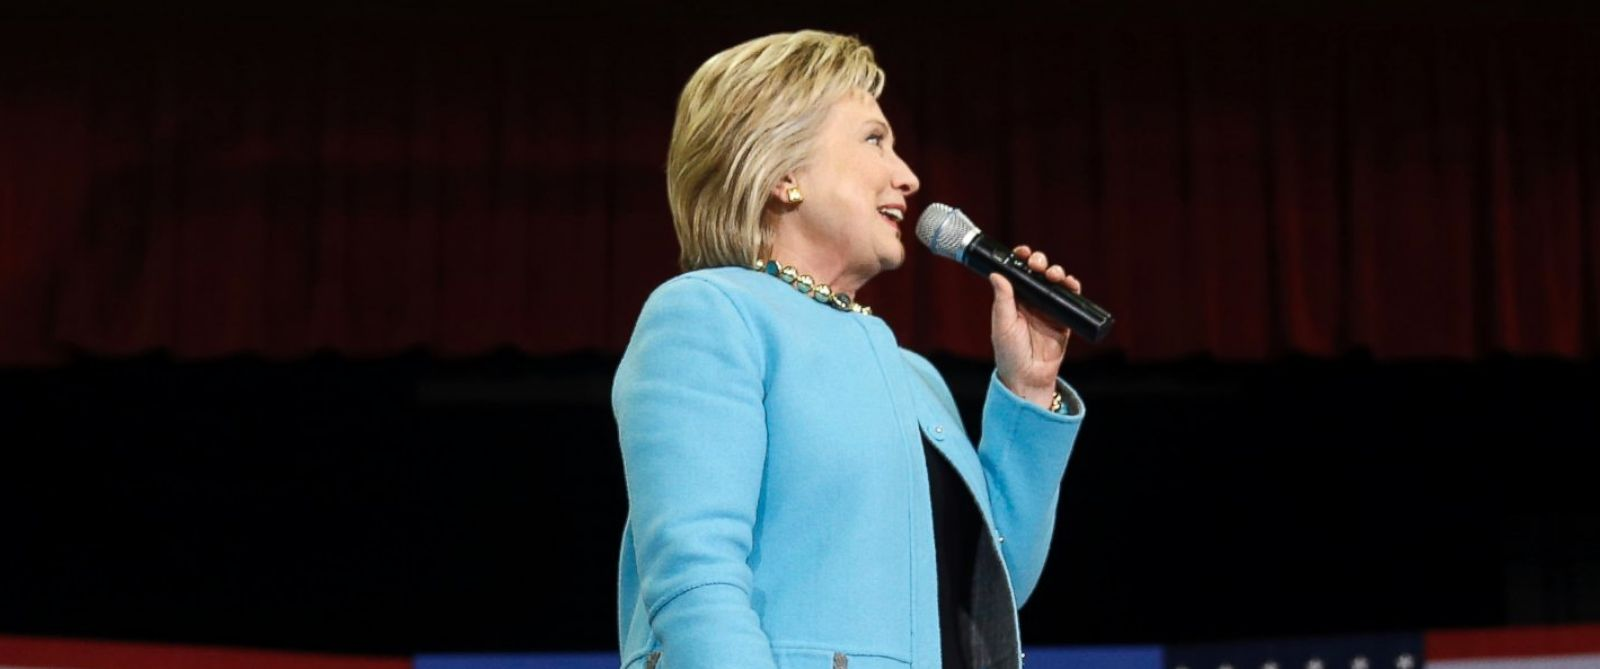 PHOTO: Democratic presidential candidate Hillary Clinton speaks during a campaign stop, Feb. 8, 2016, in Hudson, N.H.